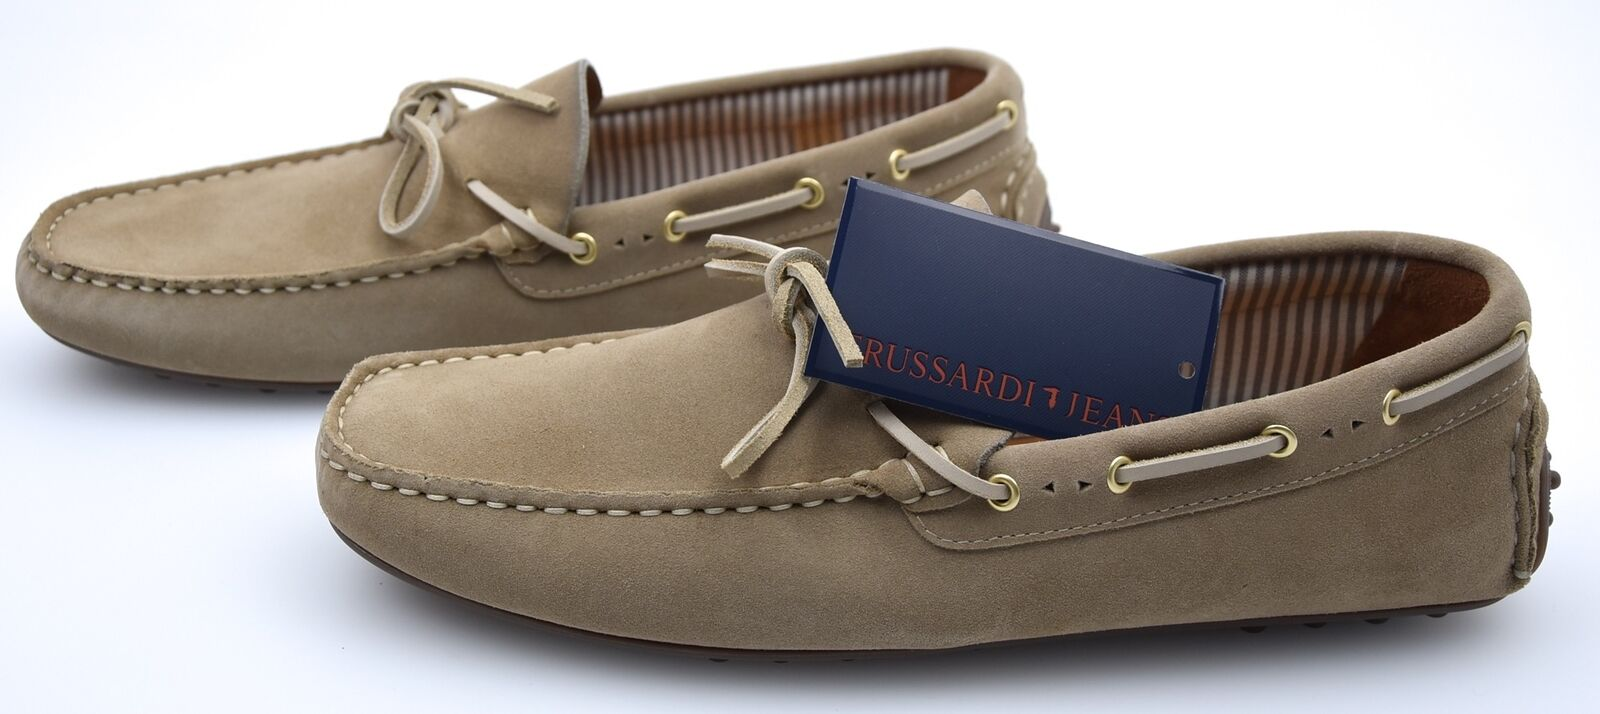 TRUSSARDI JEANS MAN LOAFERS SHOES CASUAL FREE TIME SUEDE CODE 77S019